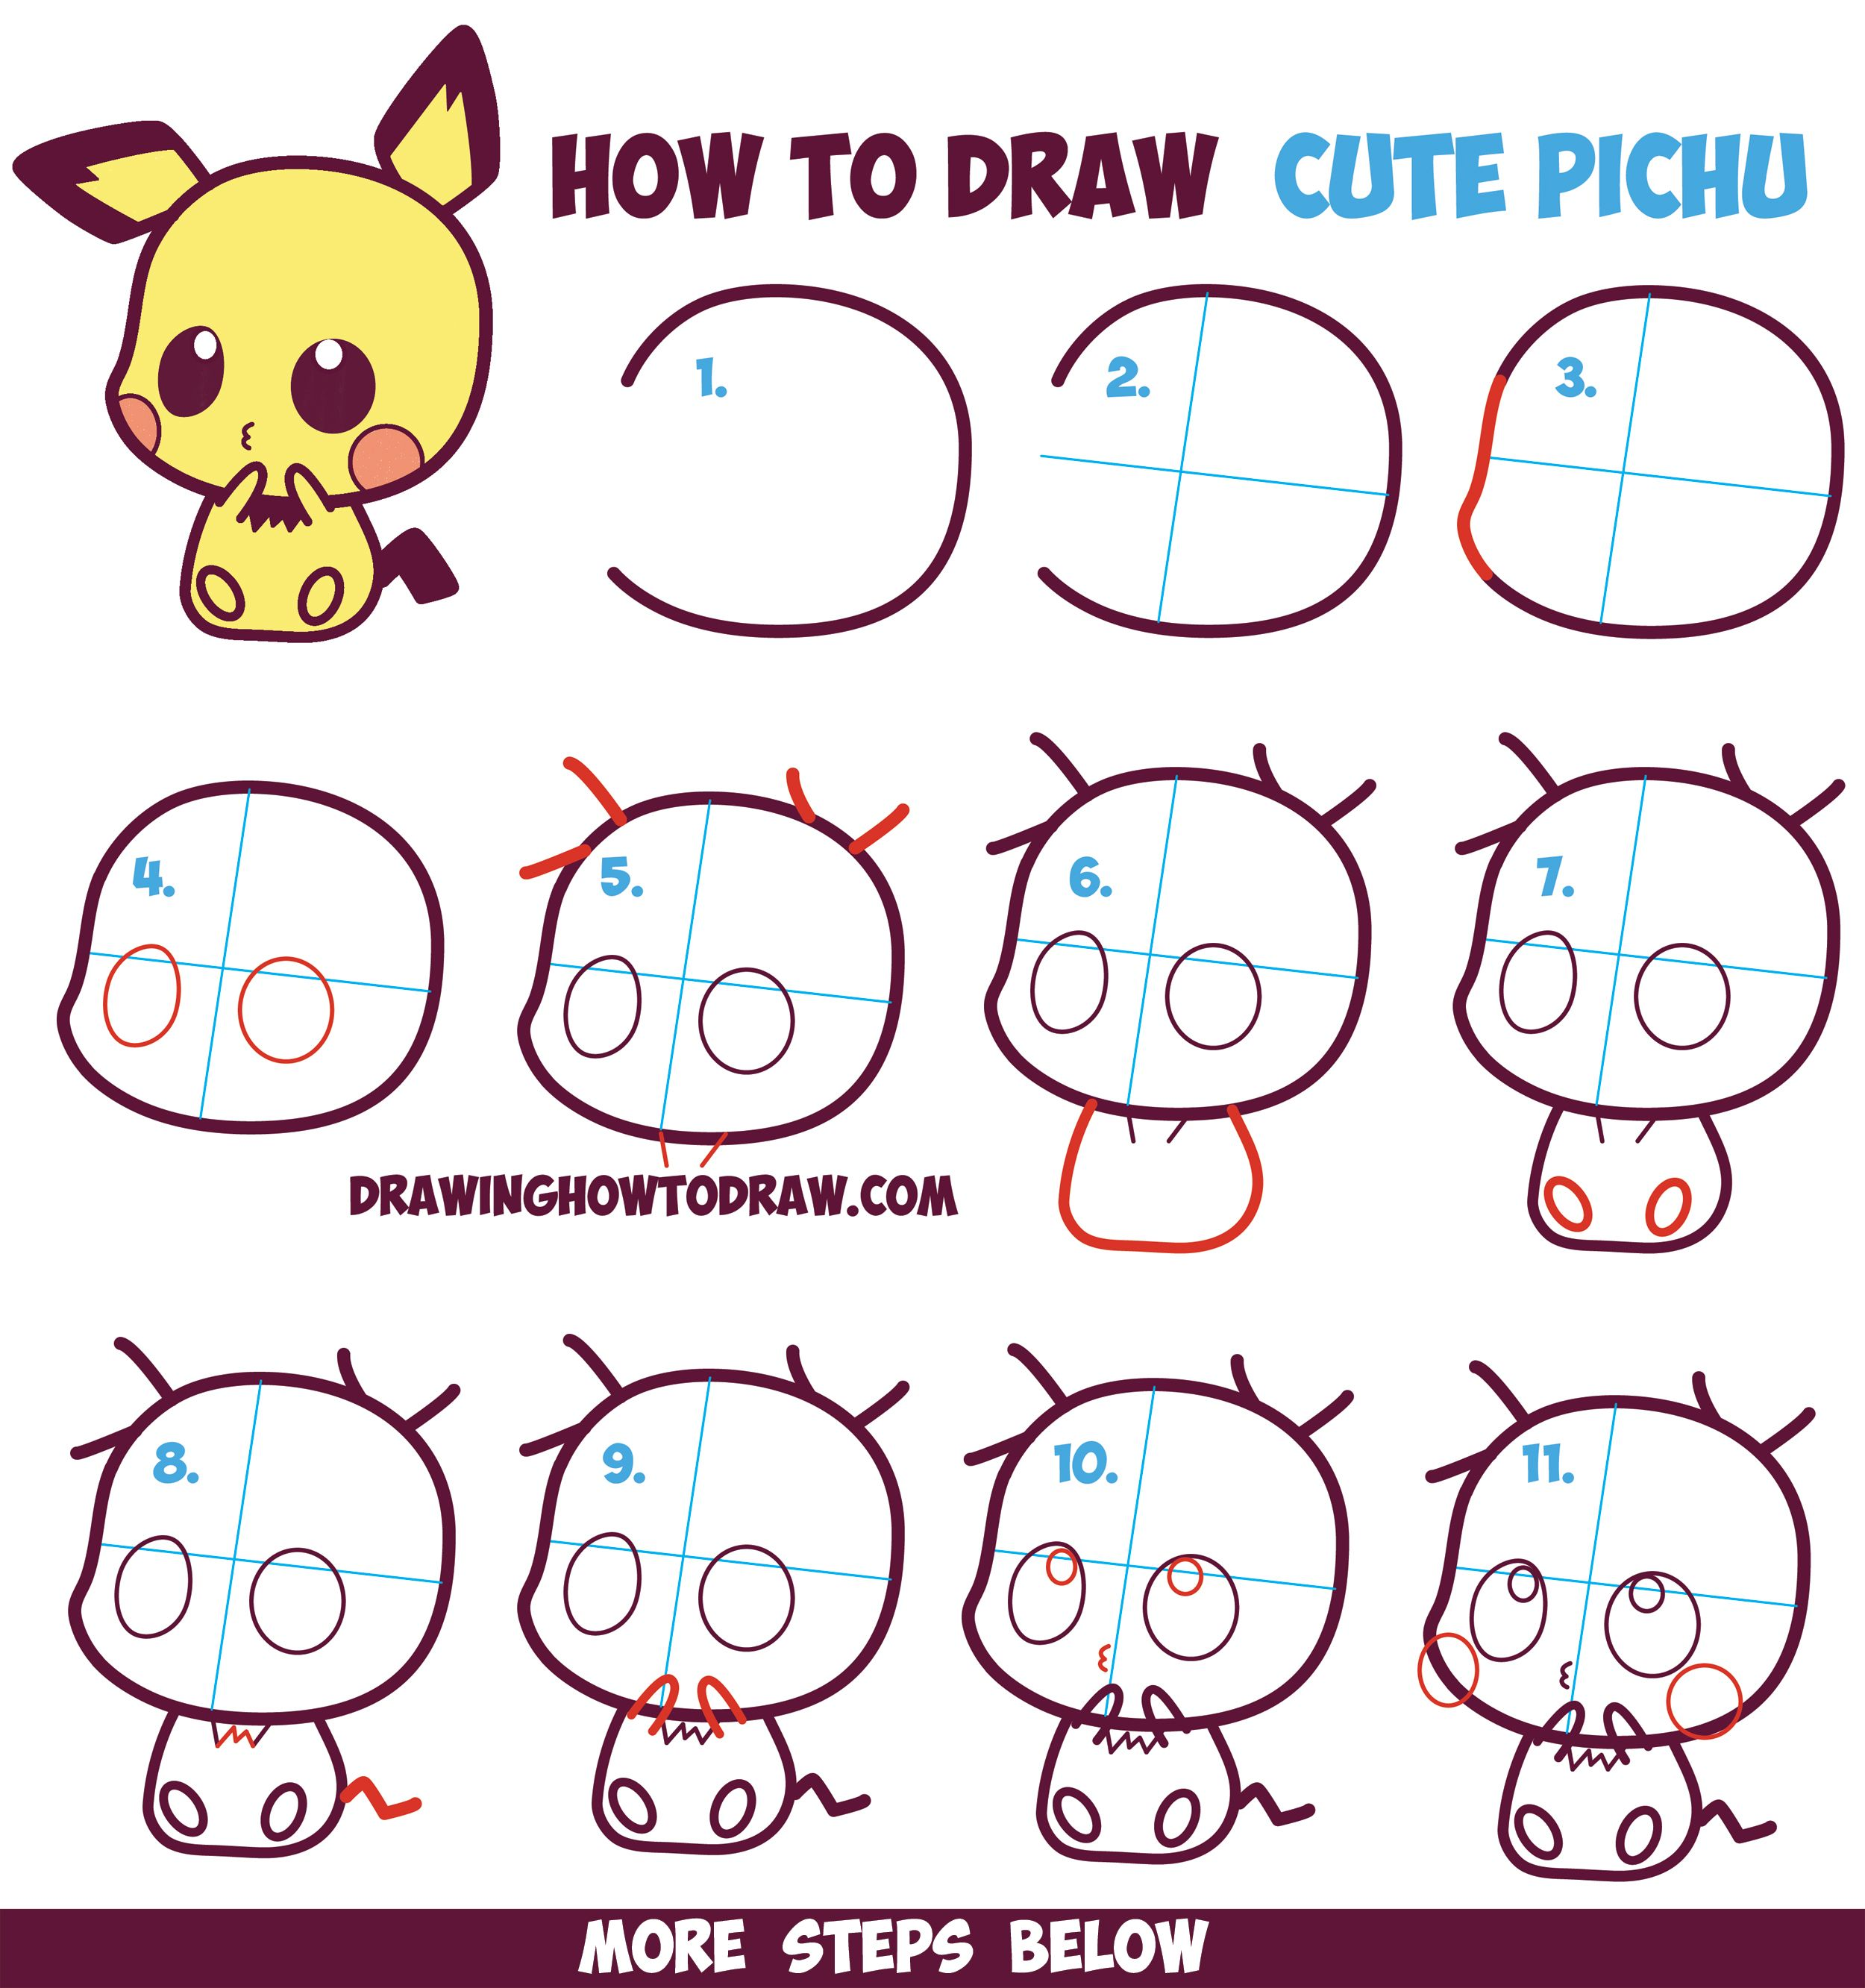 How to draw cute kawaii chibi pichu from pokemon in for Drawing ideas for beginners step by step